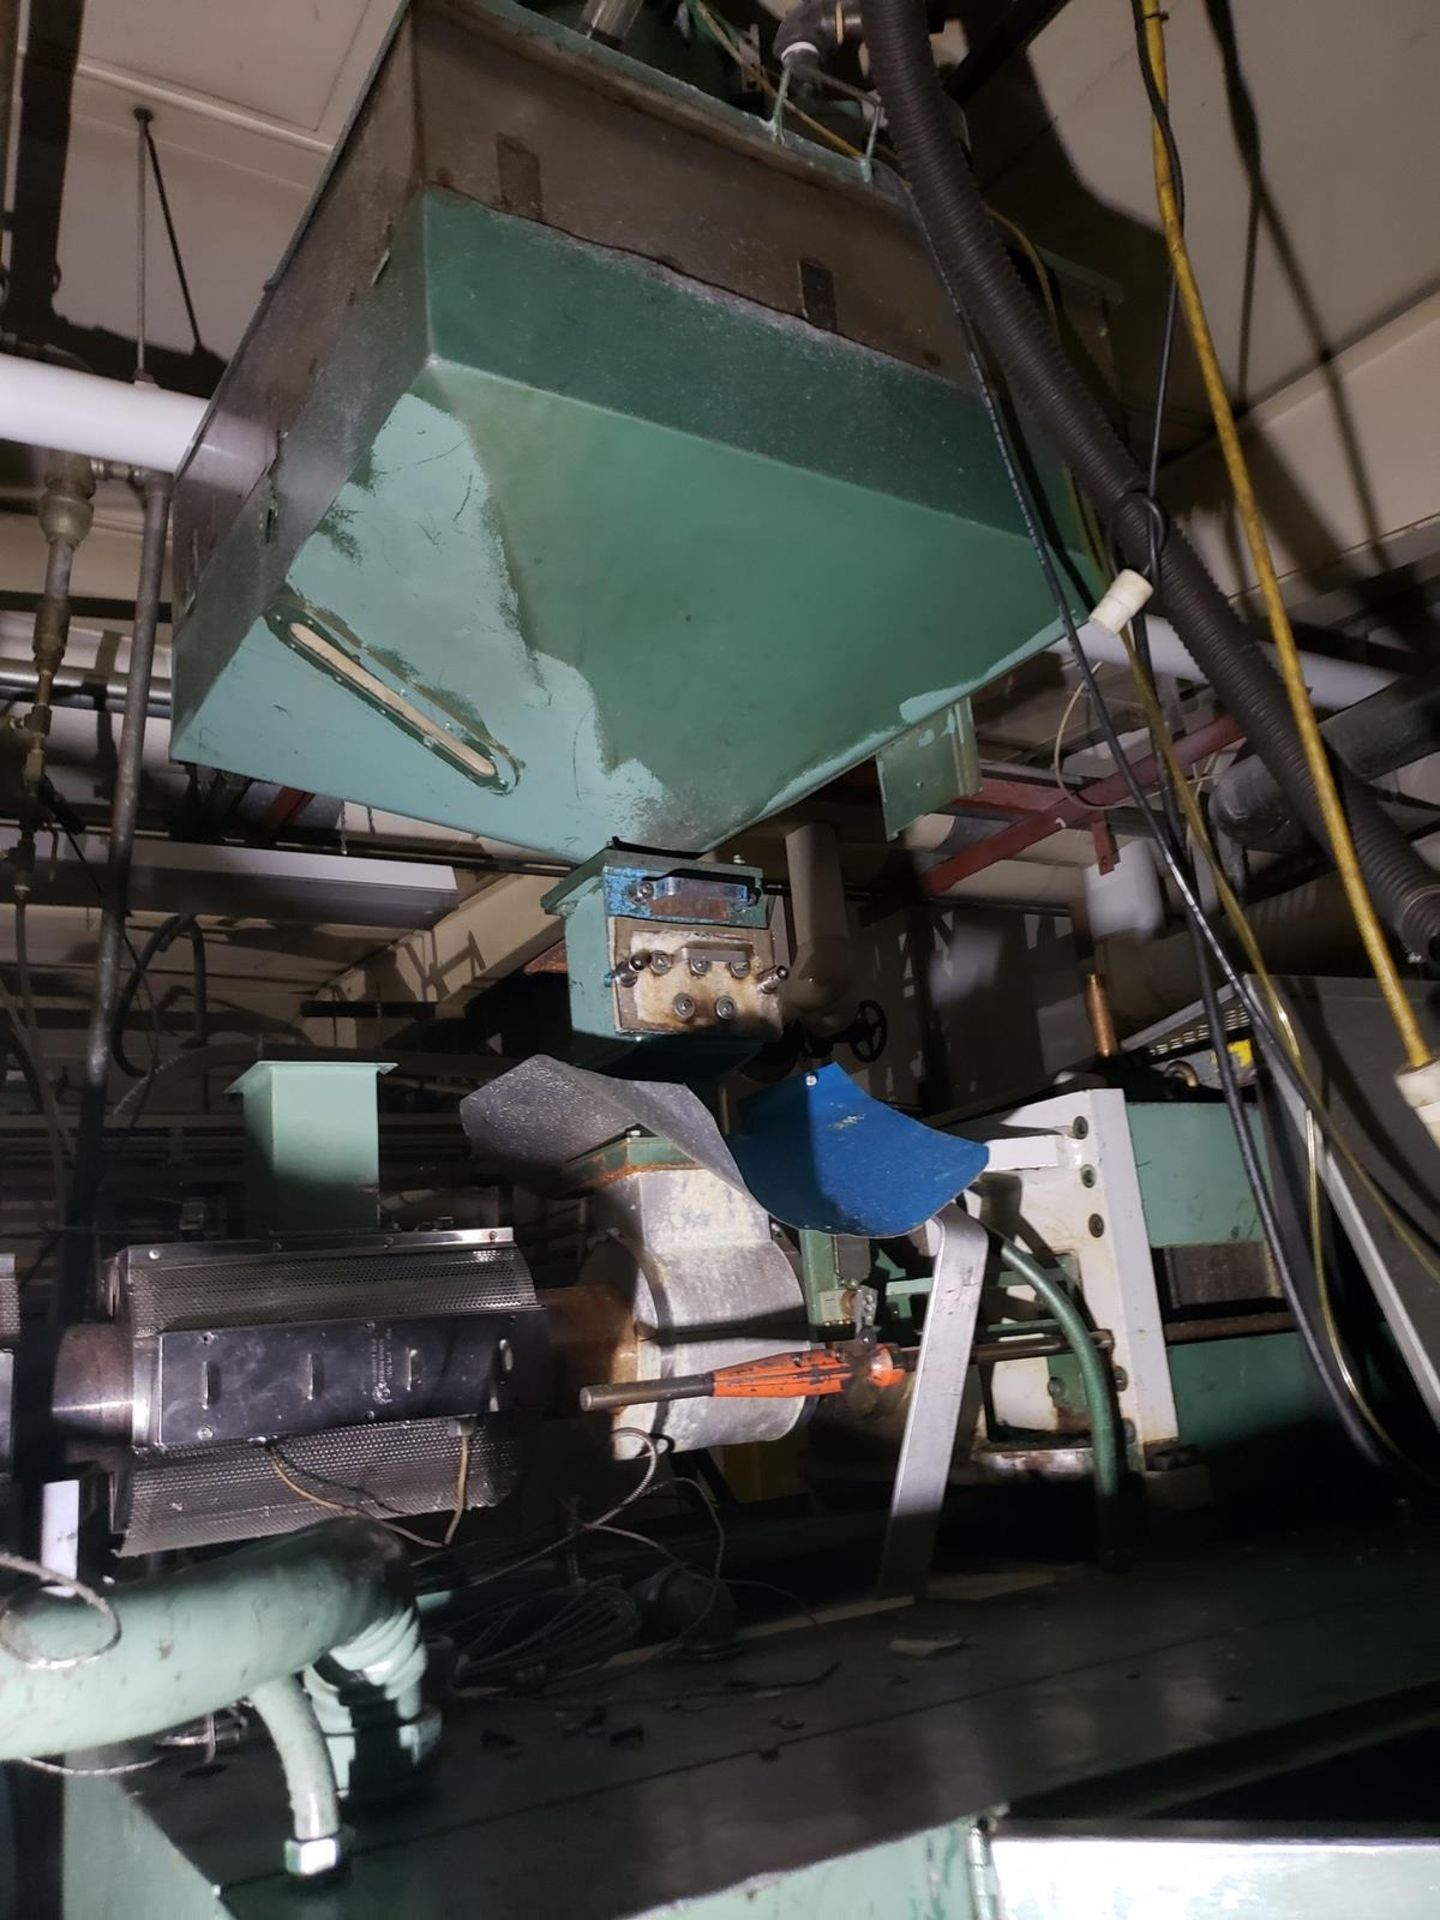 Uniloy 7-Head Blow Molding Machine, M# 250R1, S/N 250R1-3944 | Rig Fee: $14500 - Image 5 of 8